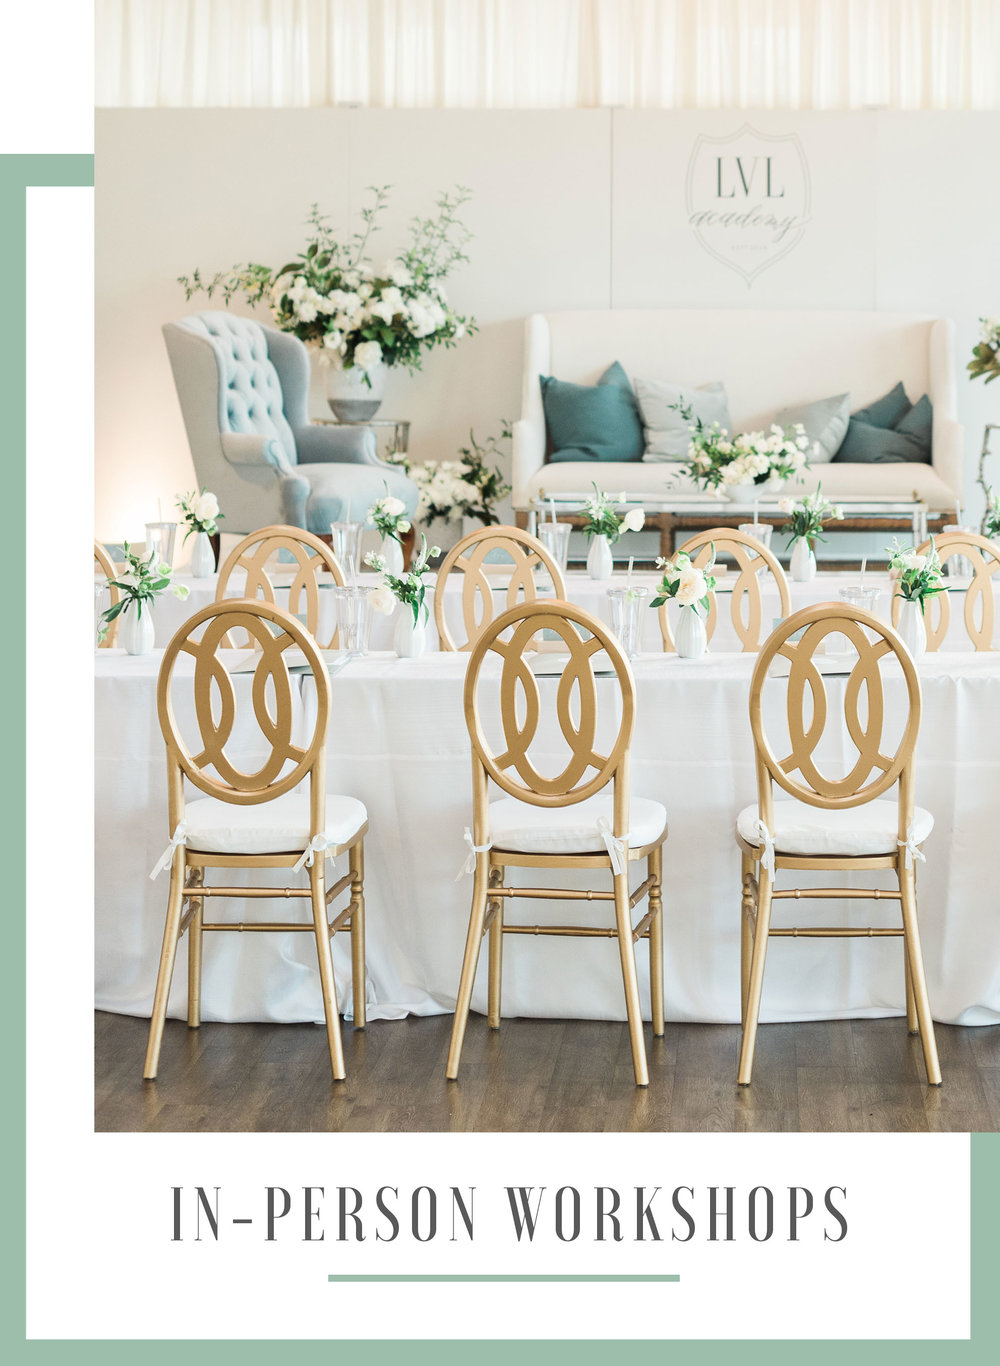 lvl-academy-wedding-planner-workshop.jpg